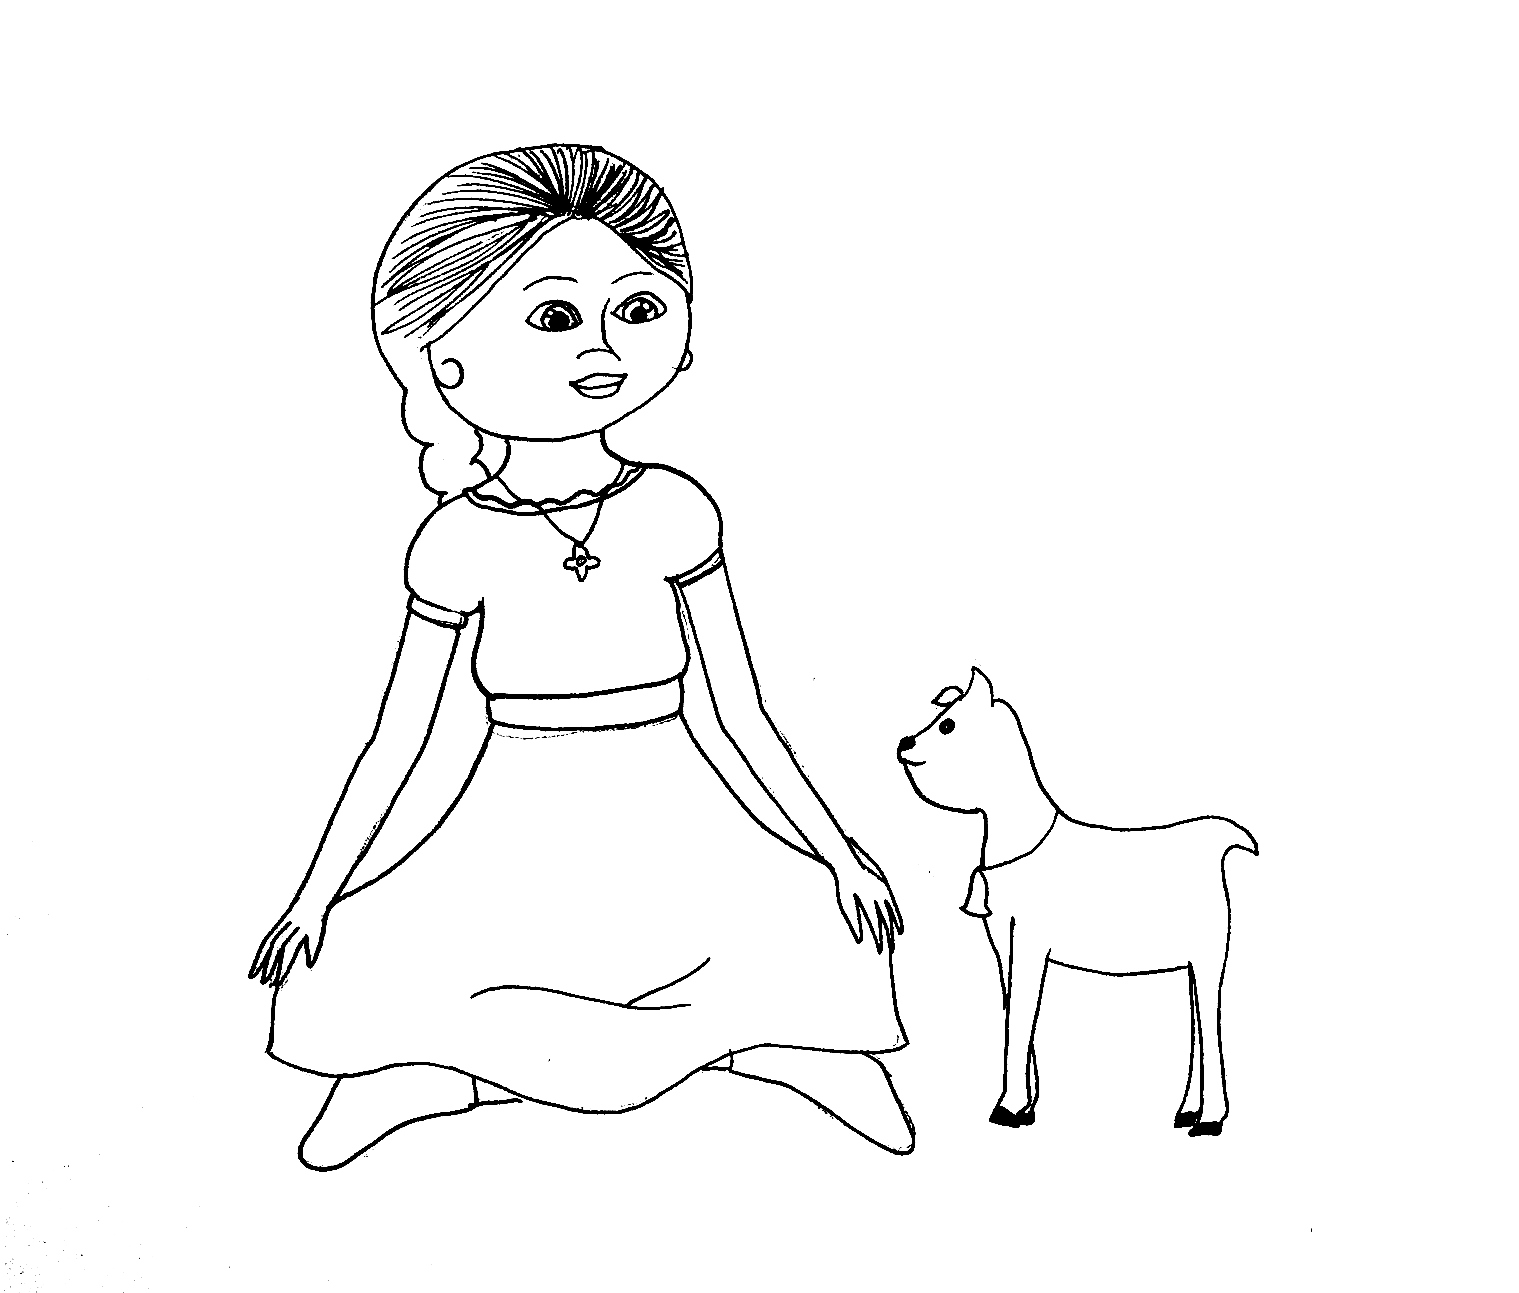 American Girl Coloring Pages: Beforever